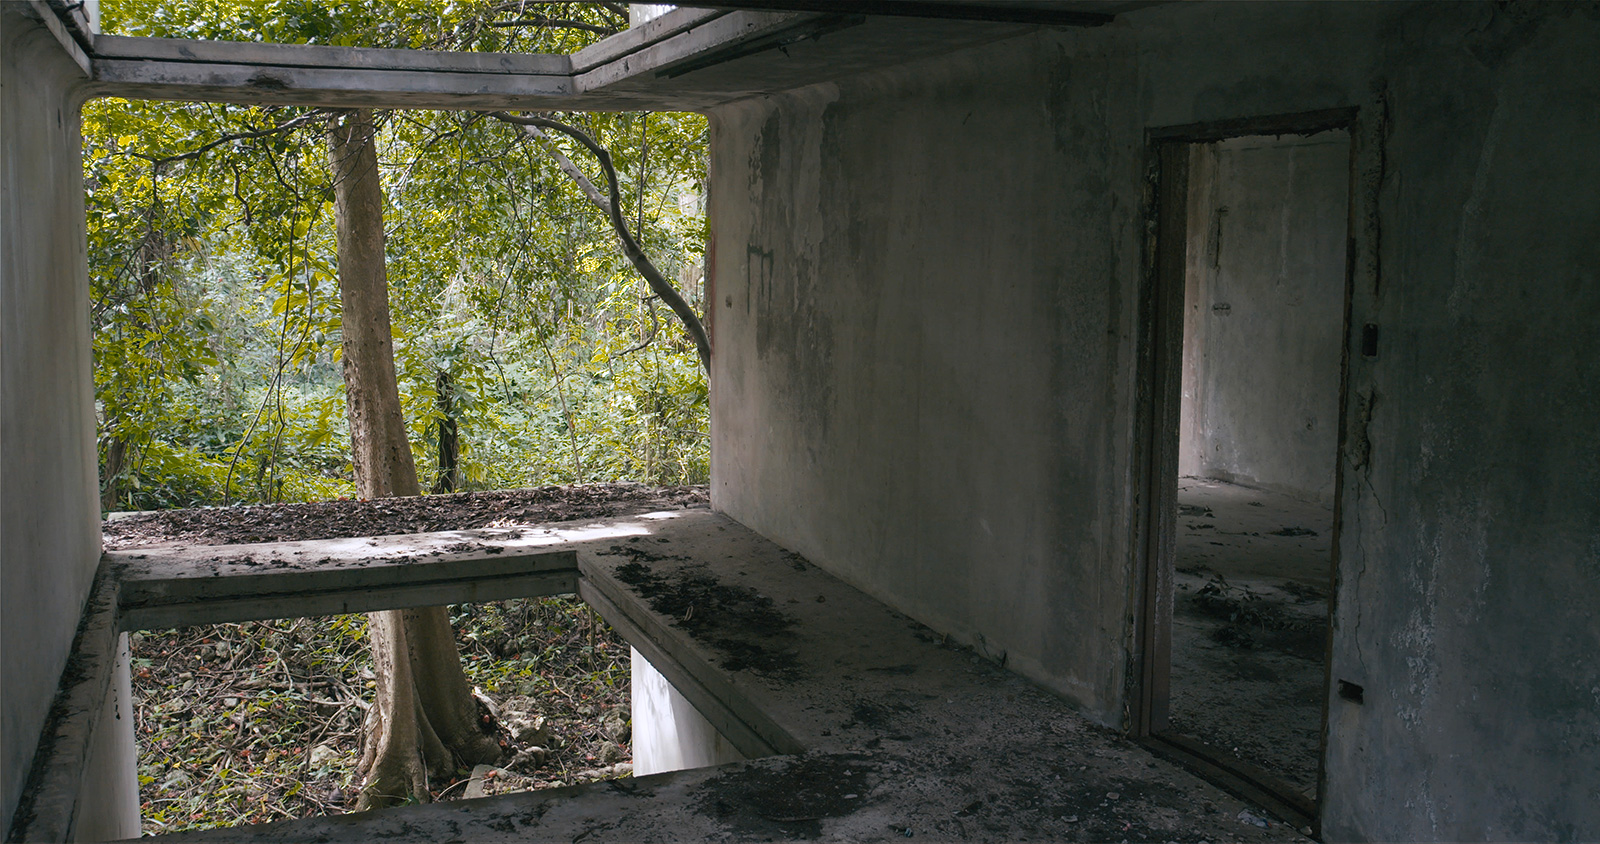 David Hartt, still from <em>In The Forest</em>, 2017. Courtesy of Corbett vs. Dempsey and commissioned by the Graham Foundation for Advanced Studies in the Fine Arts